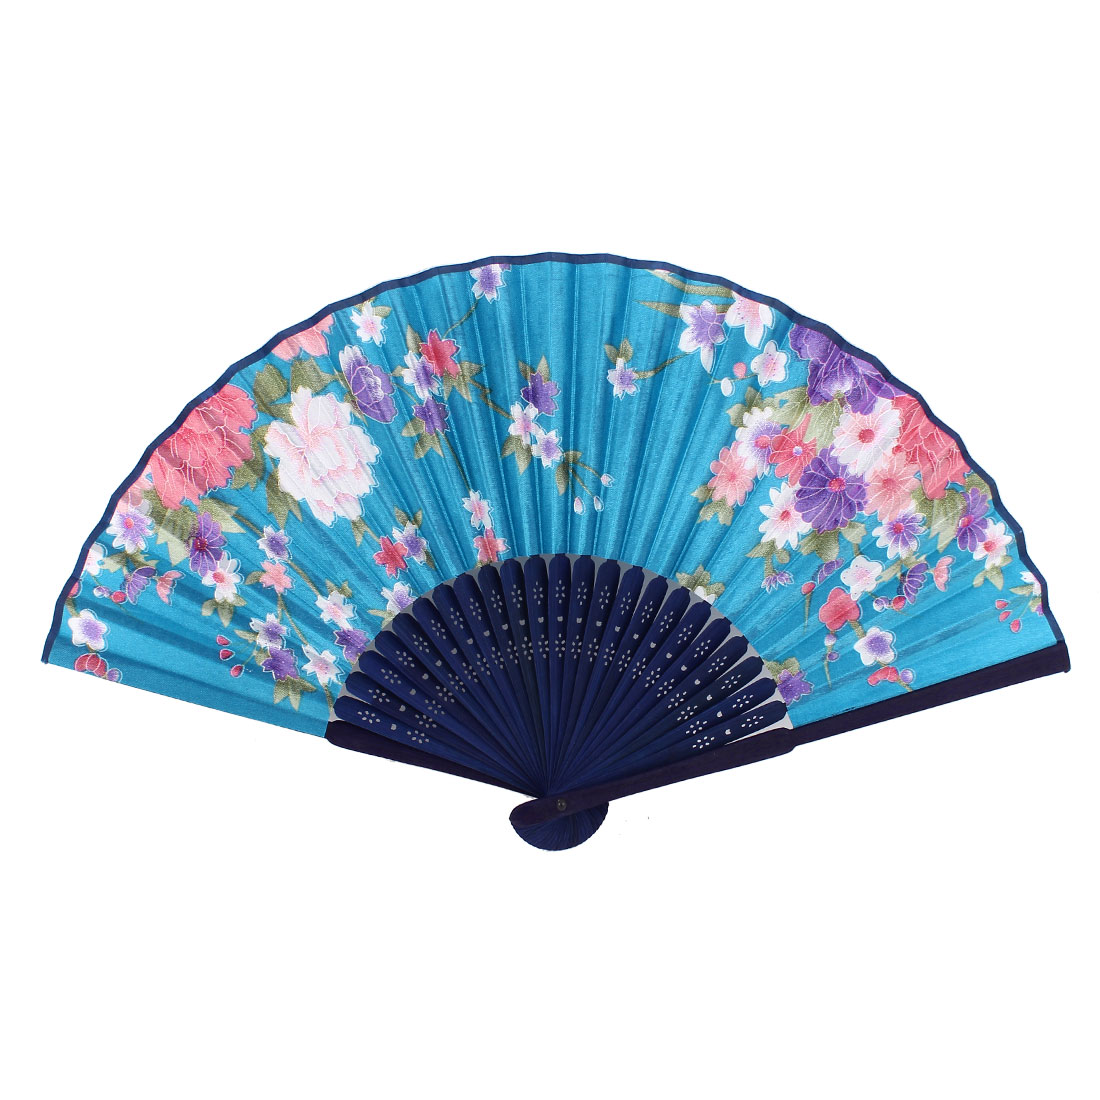 Lady Woman Hollow Out Bamboo Ribs Dance Foldable Handheld Hand Fan Blue